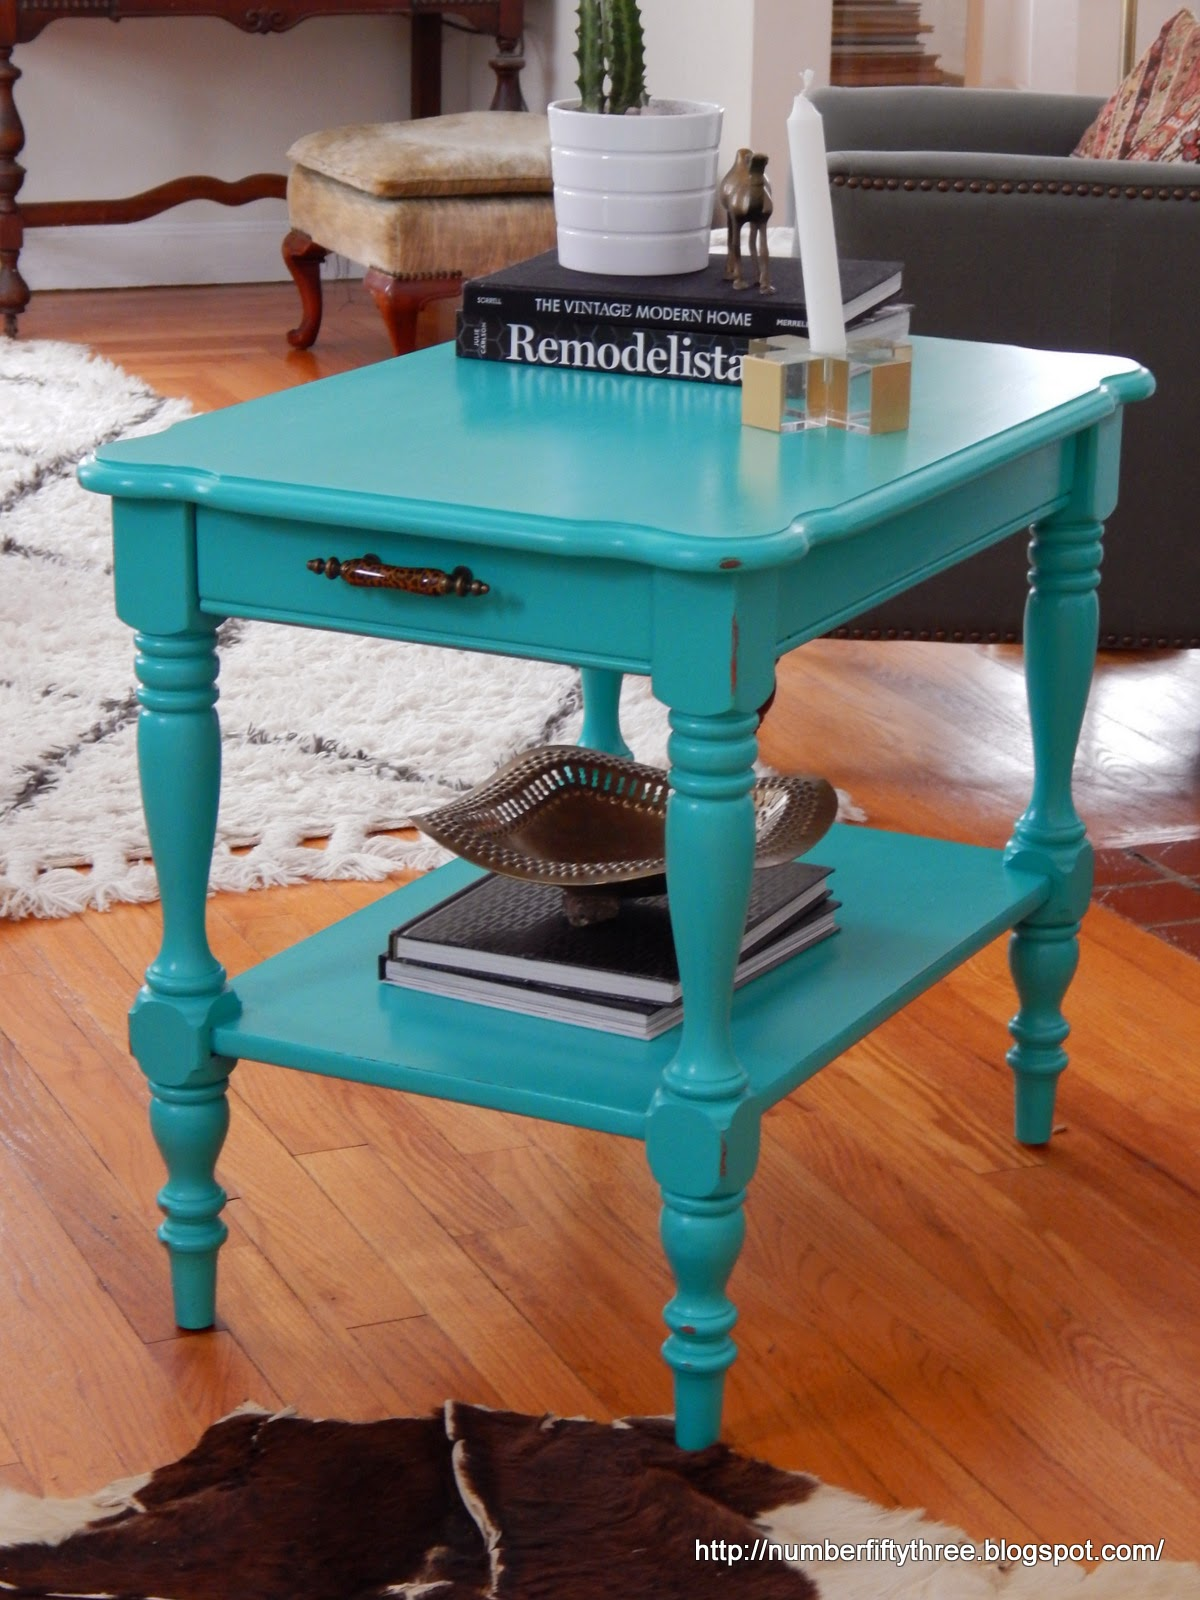 I Was First Introduced To This Color A Little Over Year Ago And Immediately Hooked Ve Shared Links All The Fun Pieces Used Patina Green On